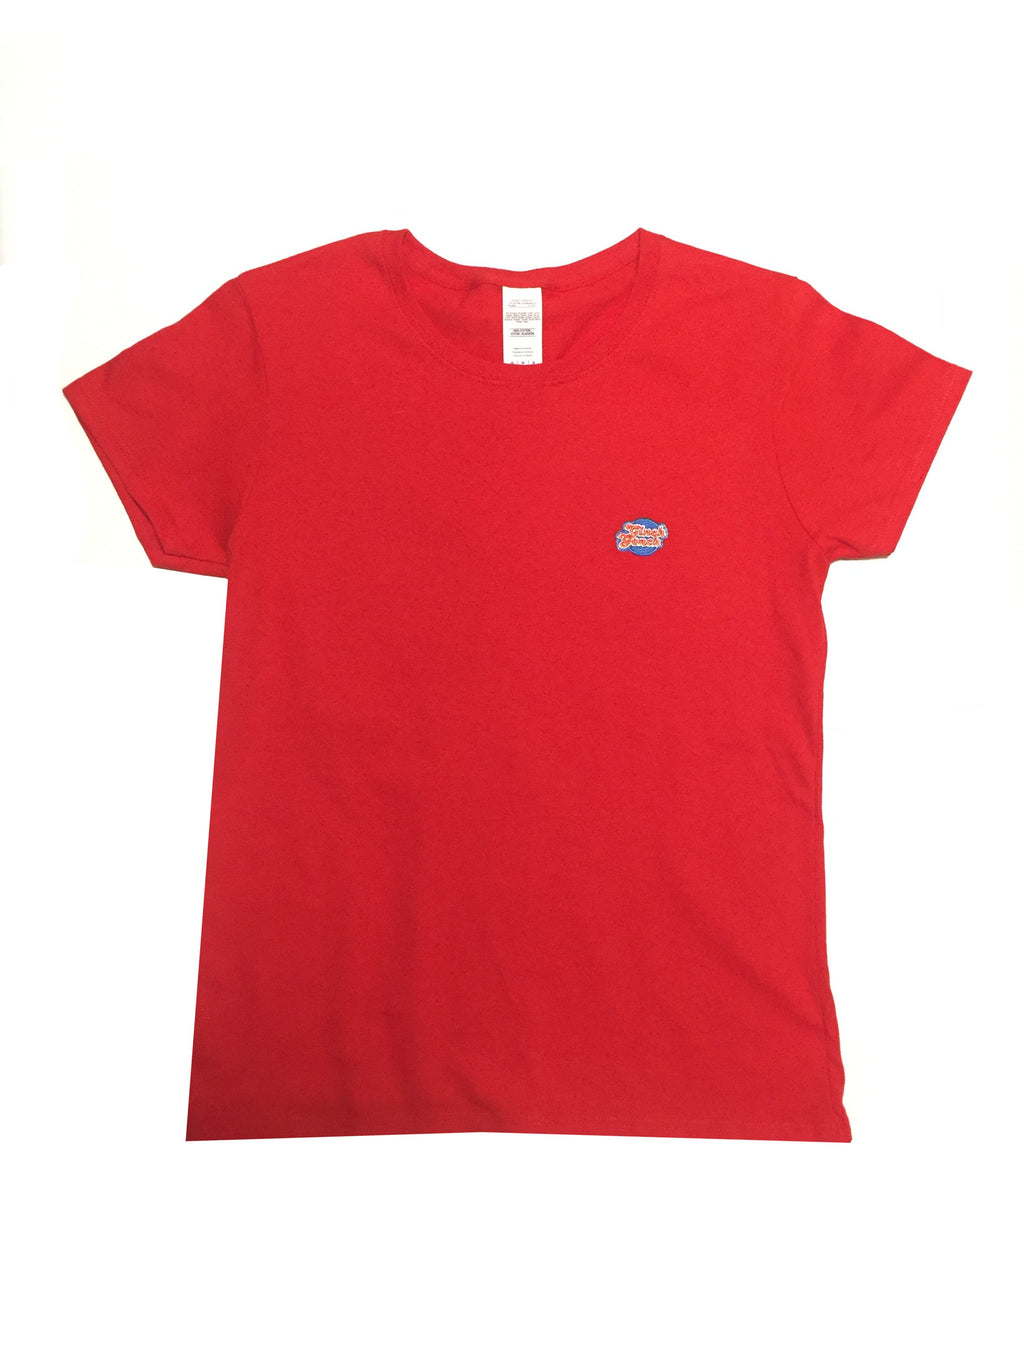 GG Red T-Shirt with Full Logo (Men & Women)